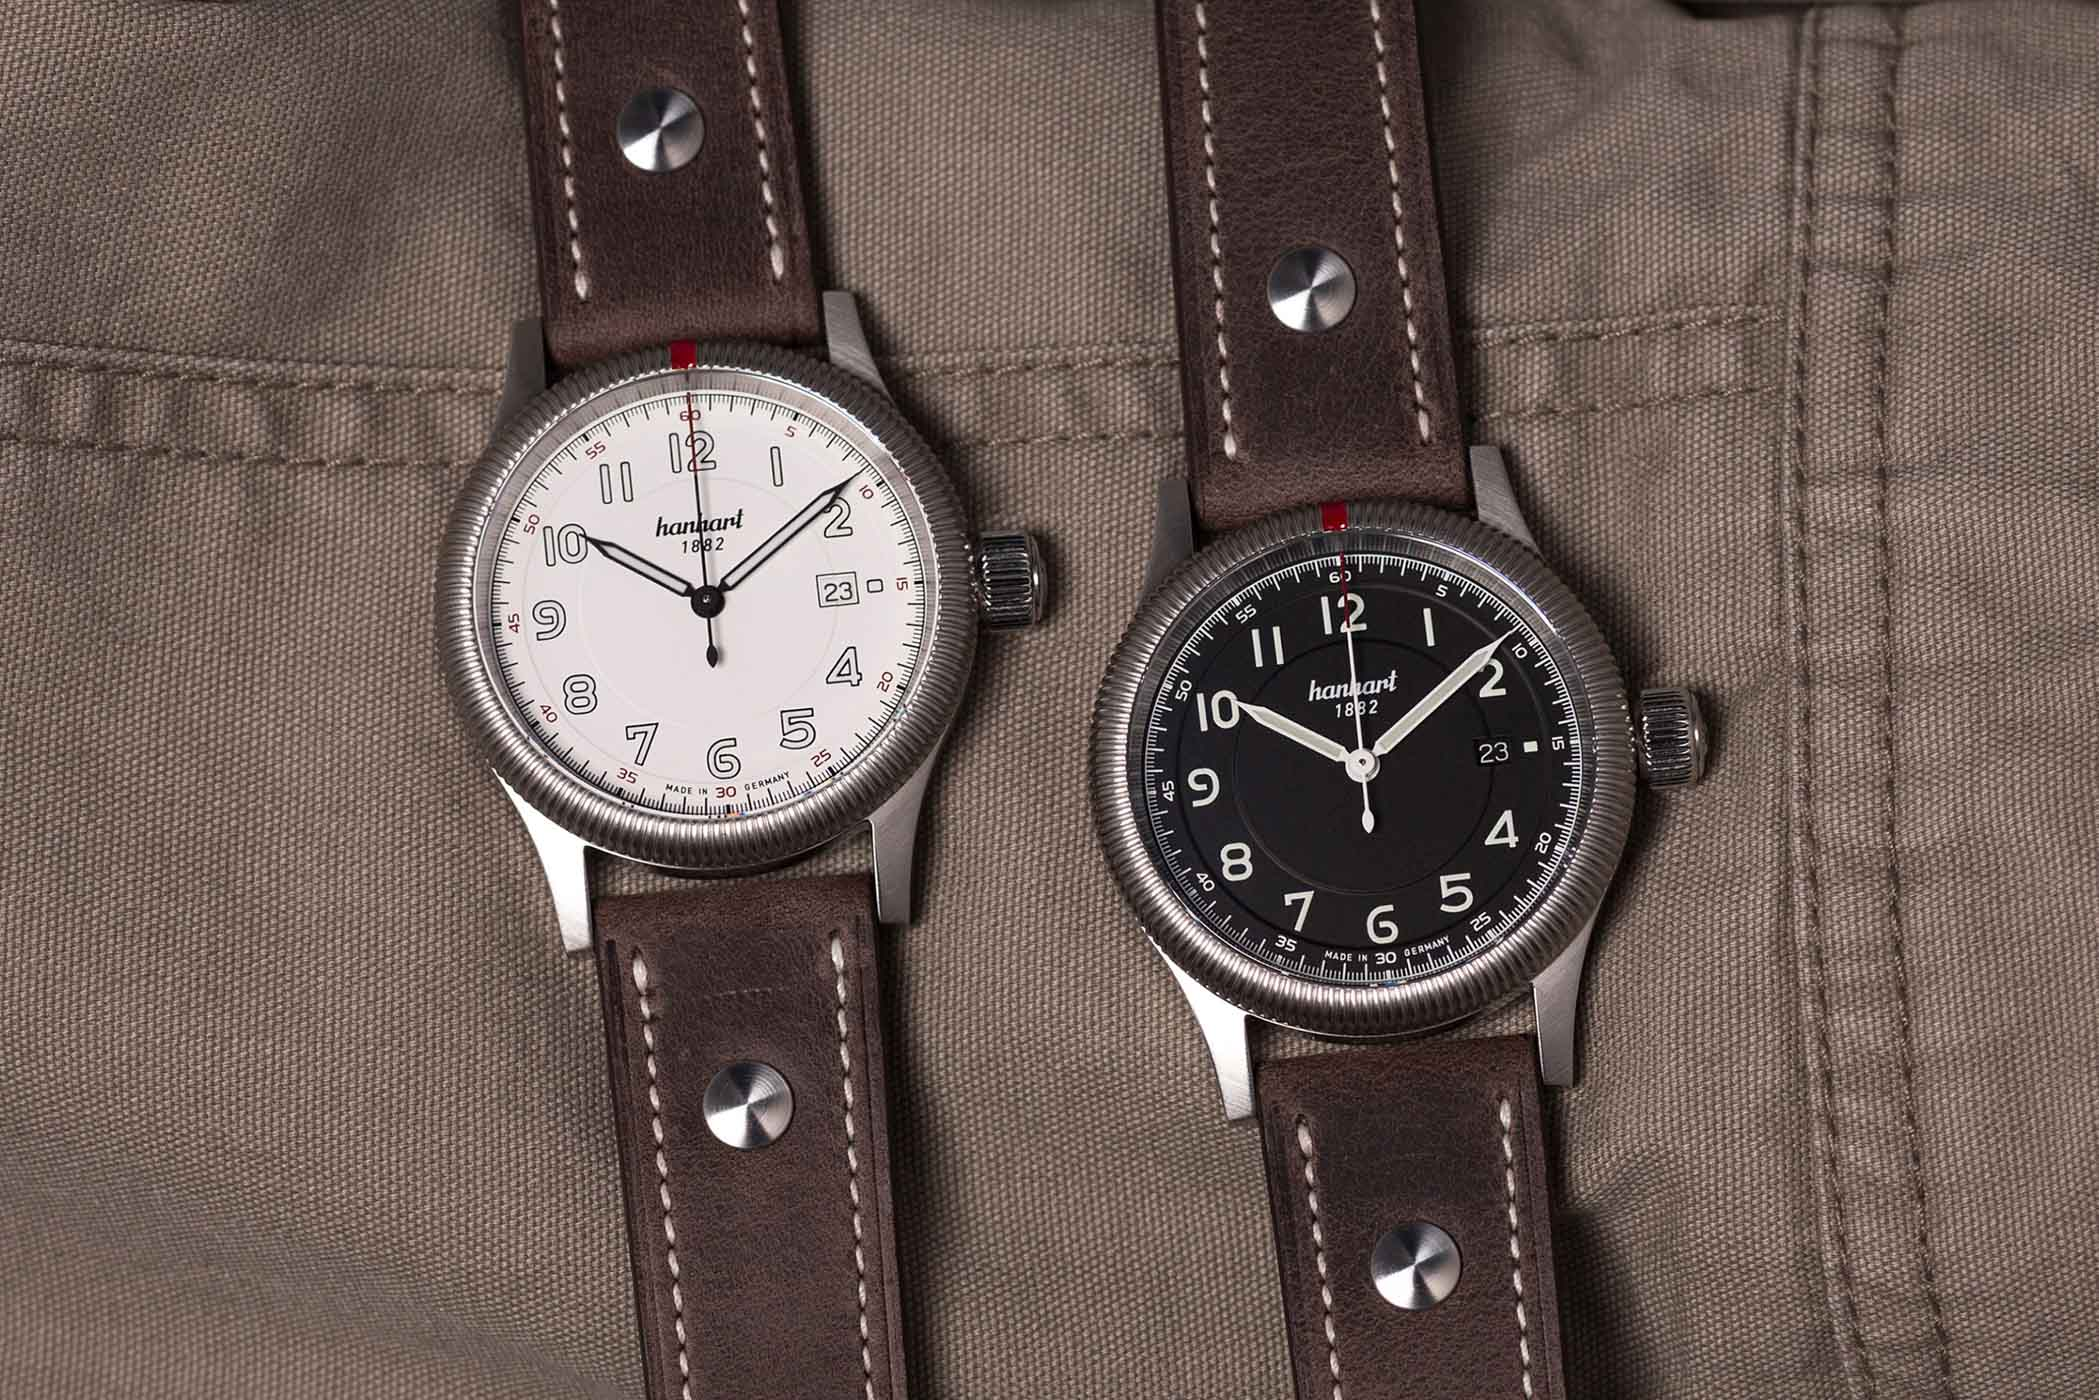 Hanhart Pioneer One Pilot Watch